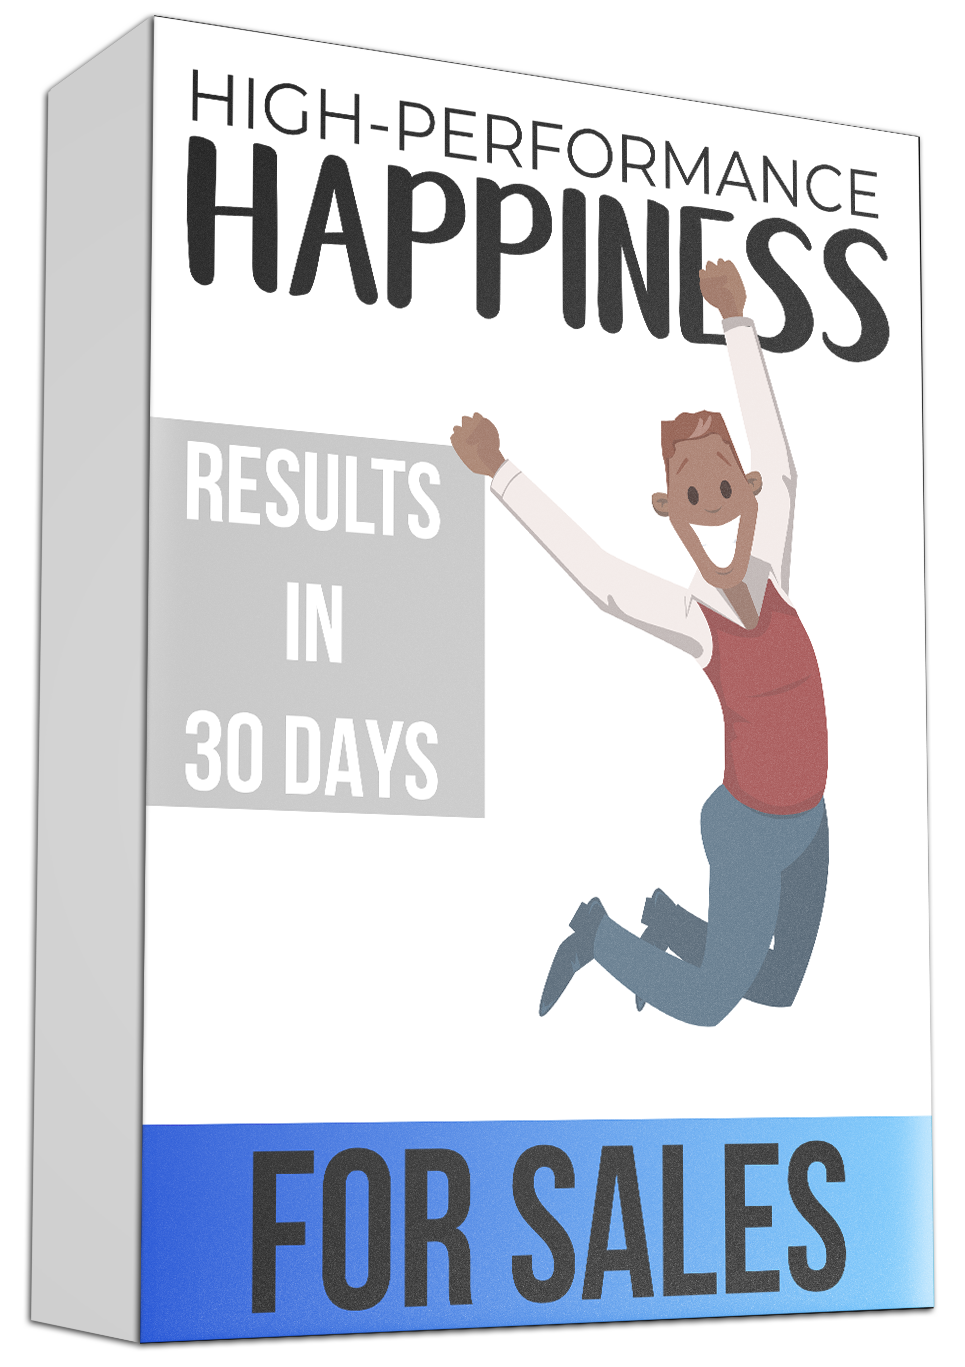 High Performance Happiness For sales.png